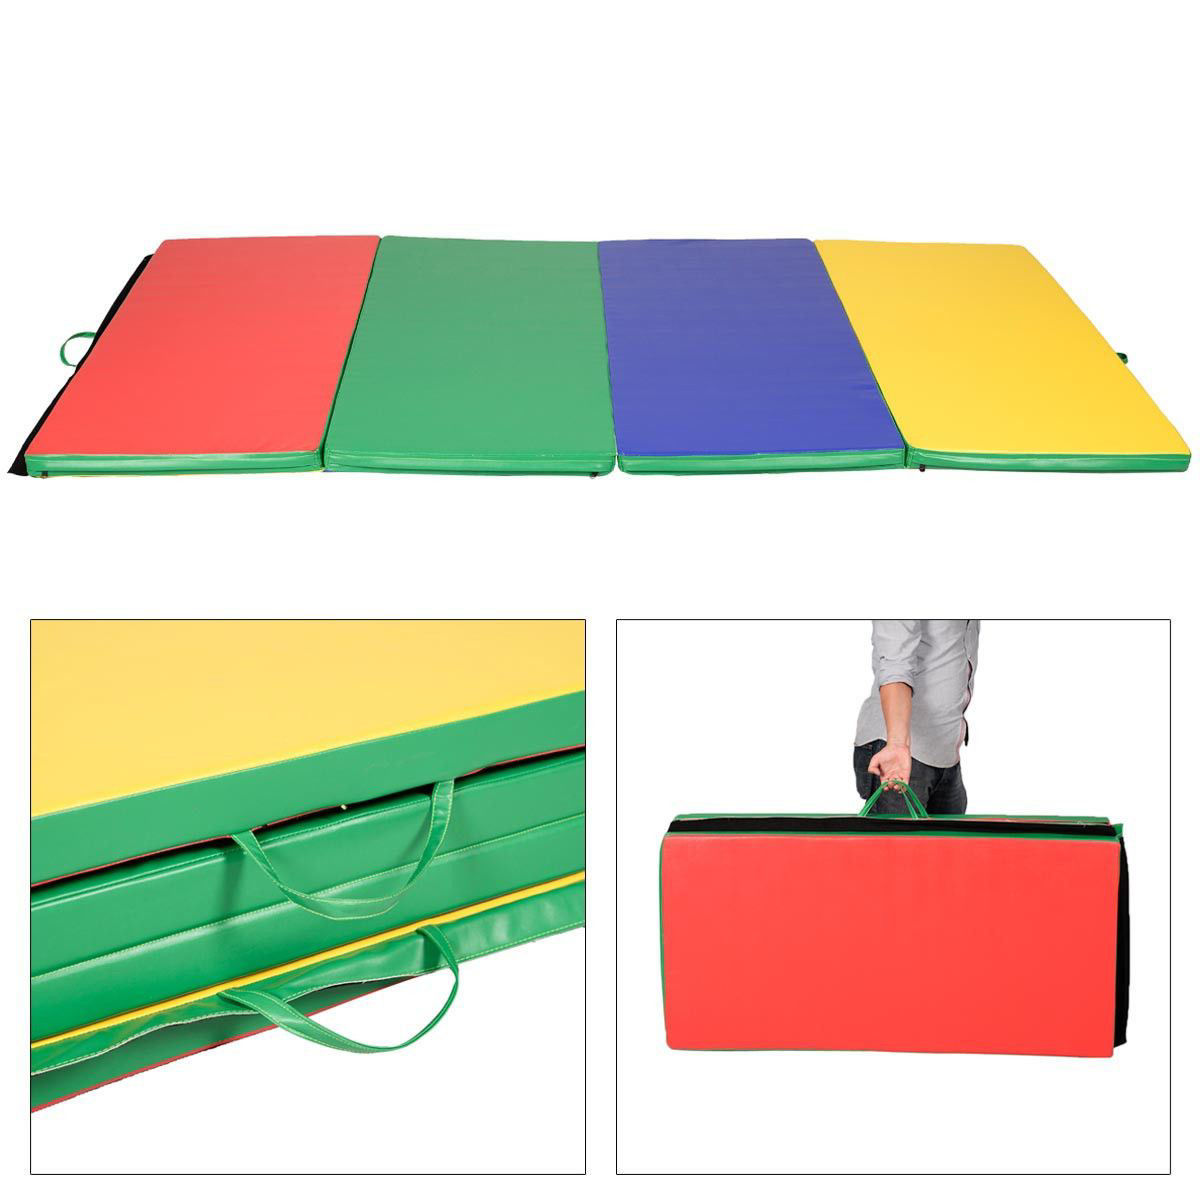 Picture of Folding Tumbling Gymnastics Mat Multicolor - 4' x 8' x 2""